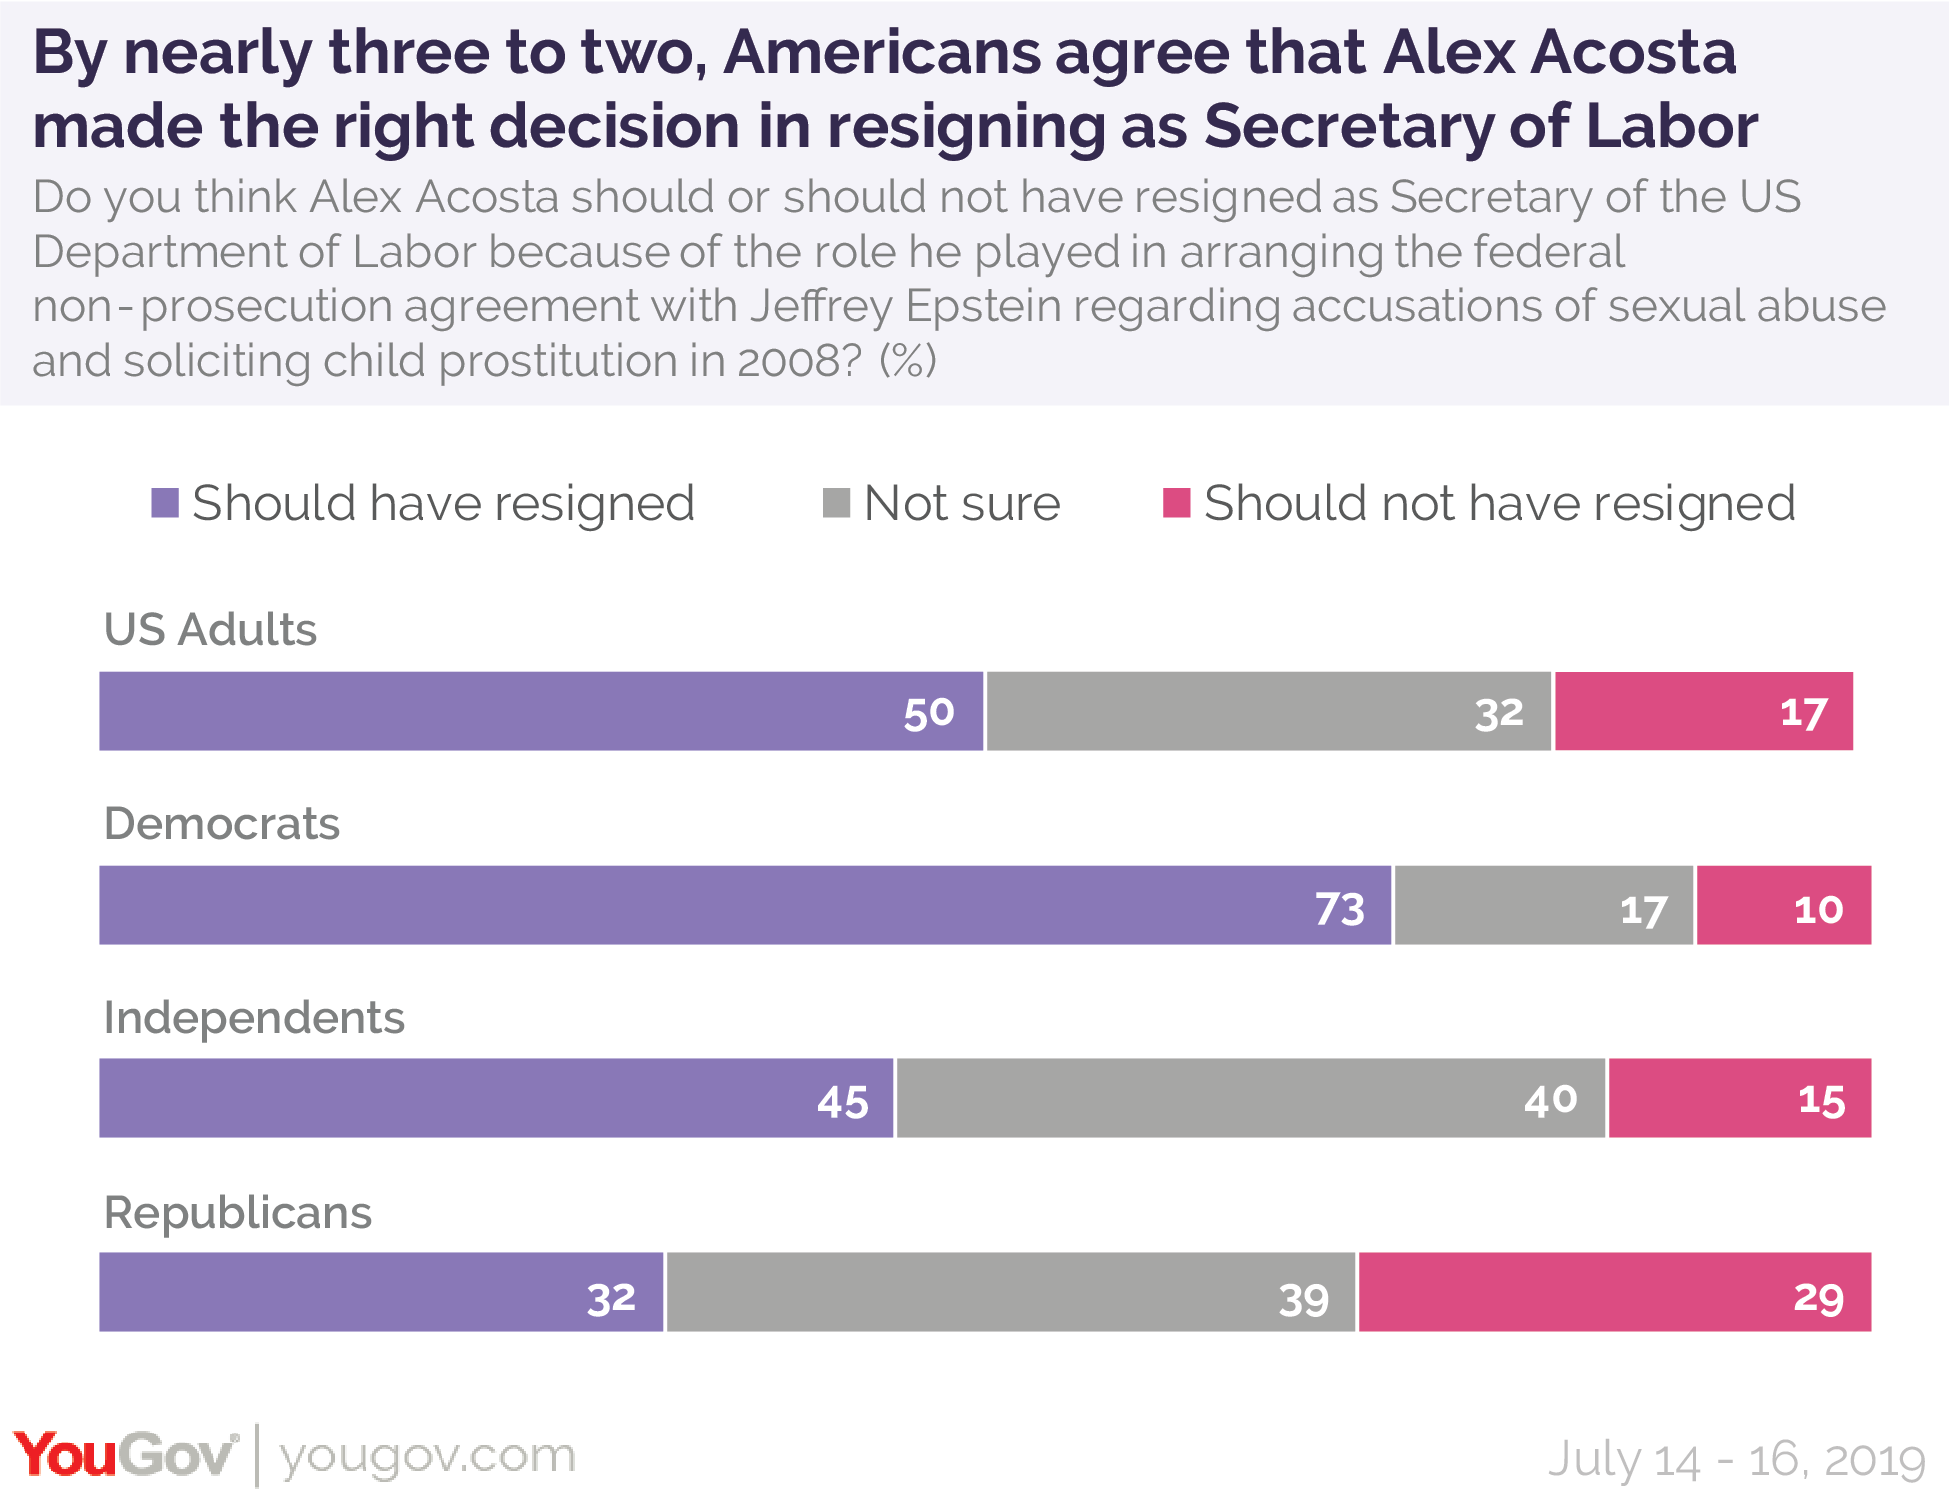 By nearly three to two, Americans agree that Alex Acosta made the right decision in resigning as US Secretary of Labor